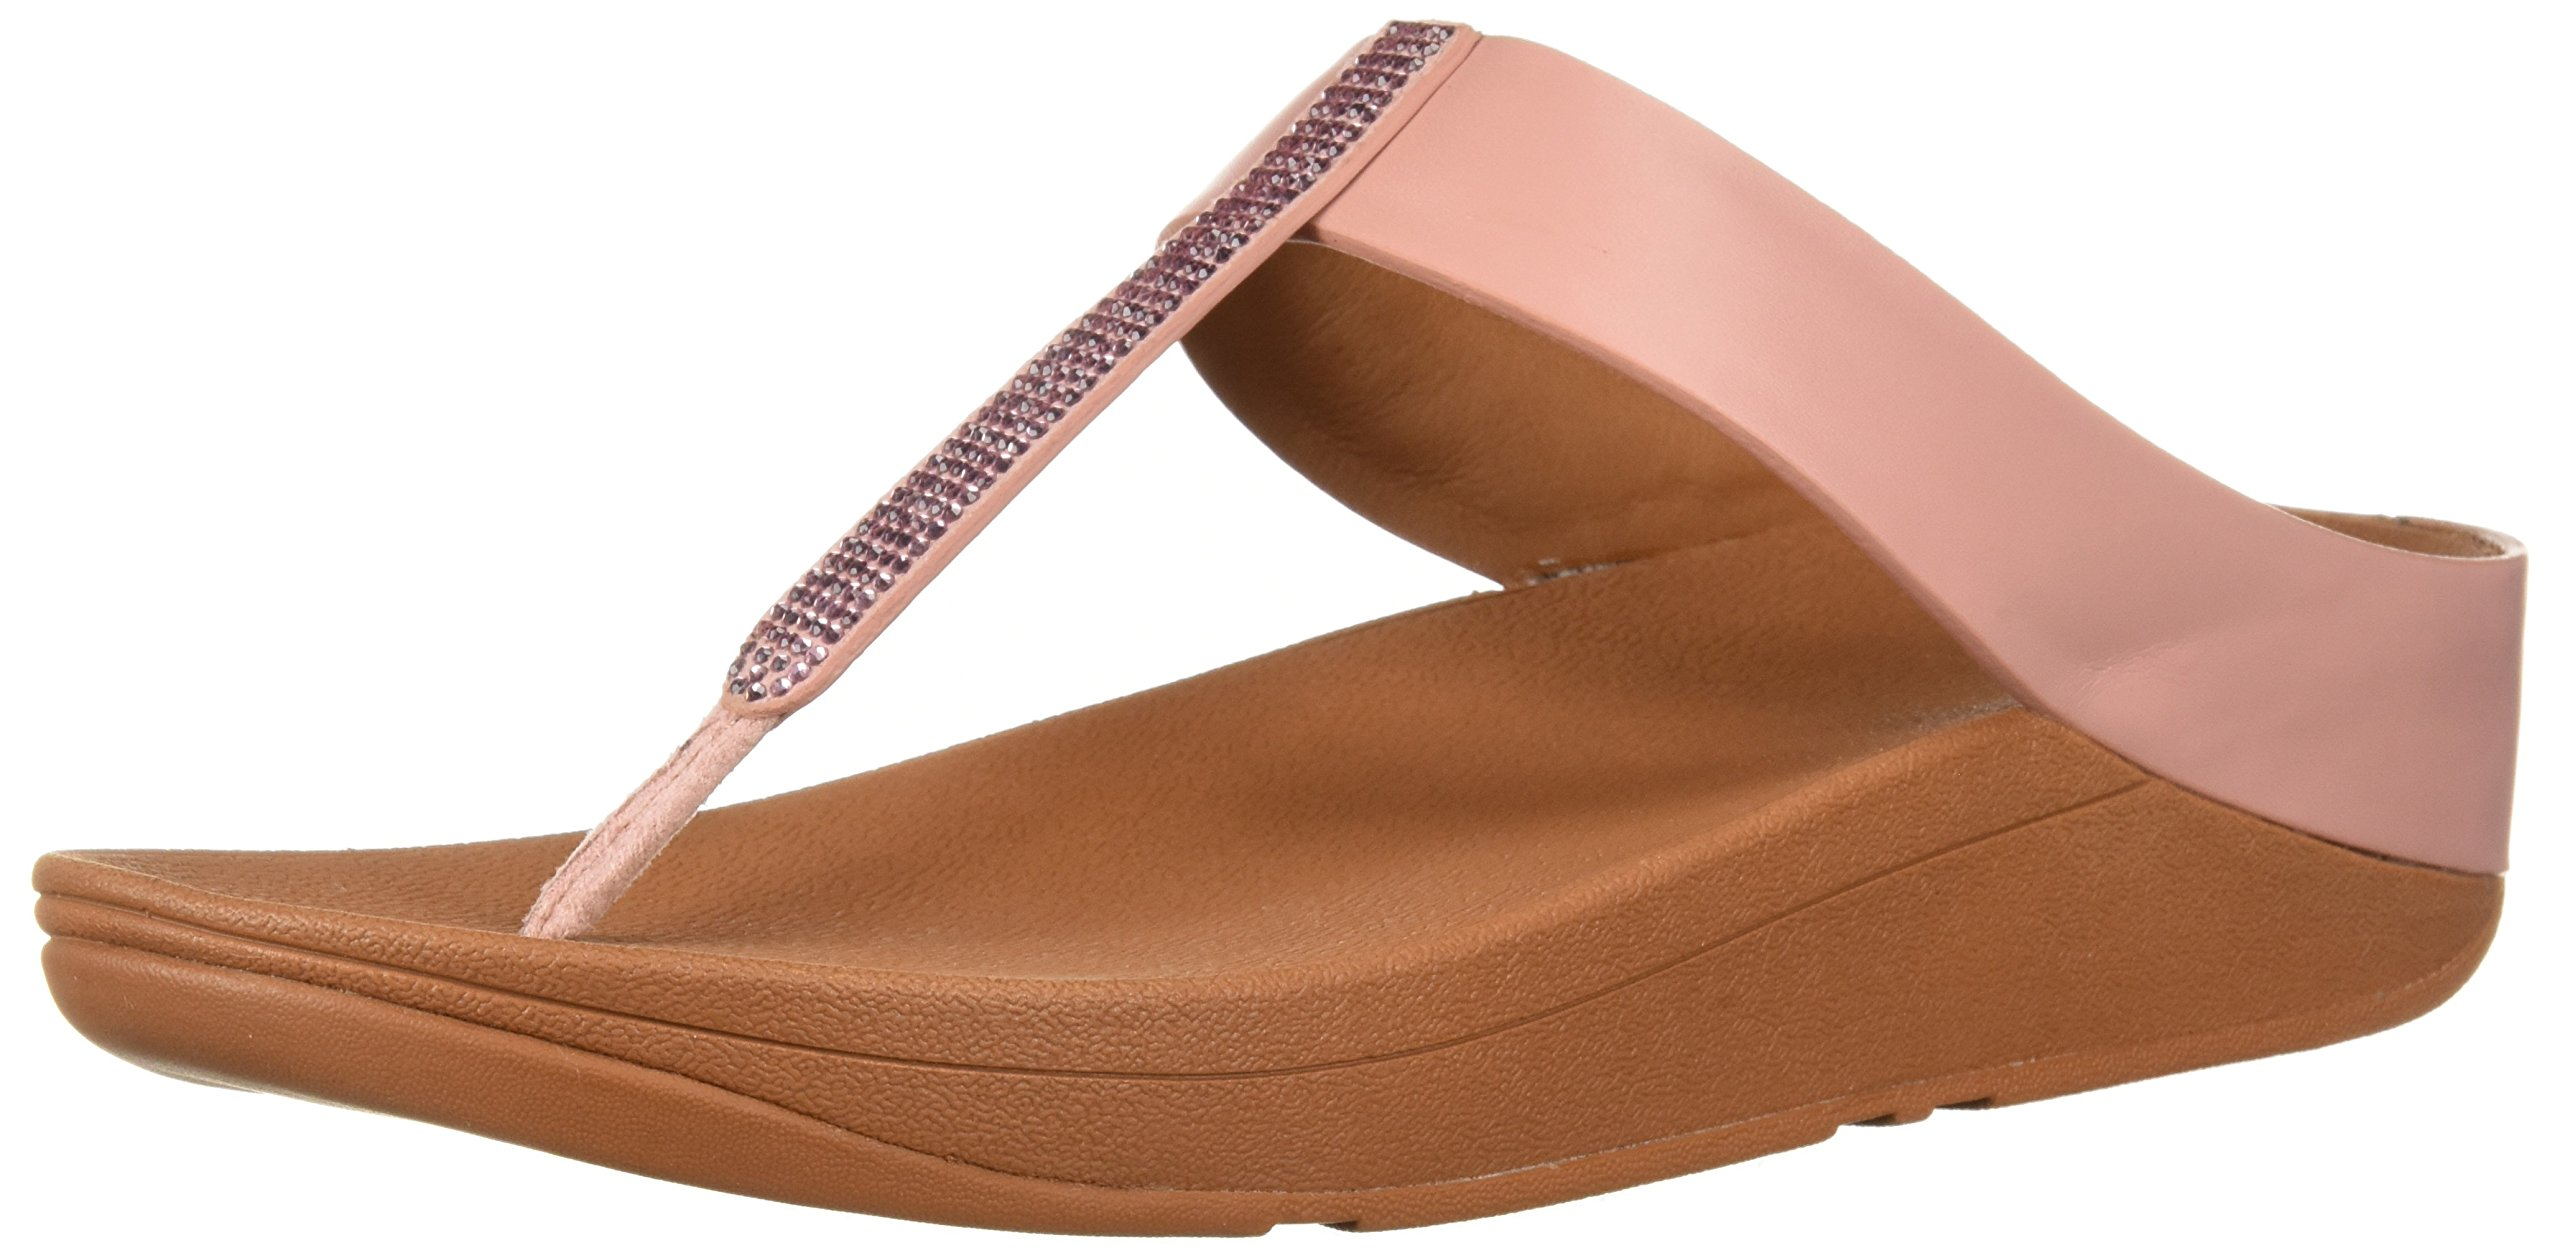 FitFlop Women's Fino Crystal Toe-Thong Sandal, Dusty Pink, 7 M US